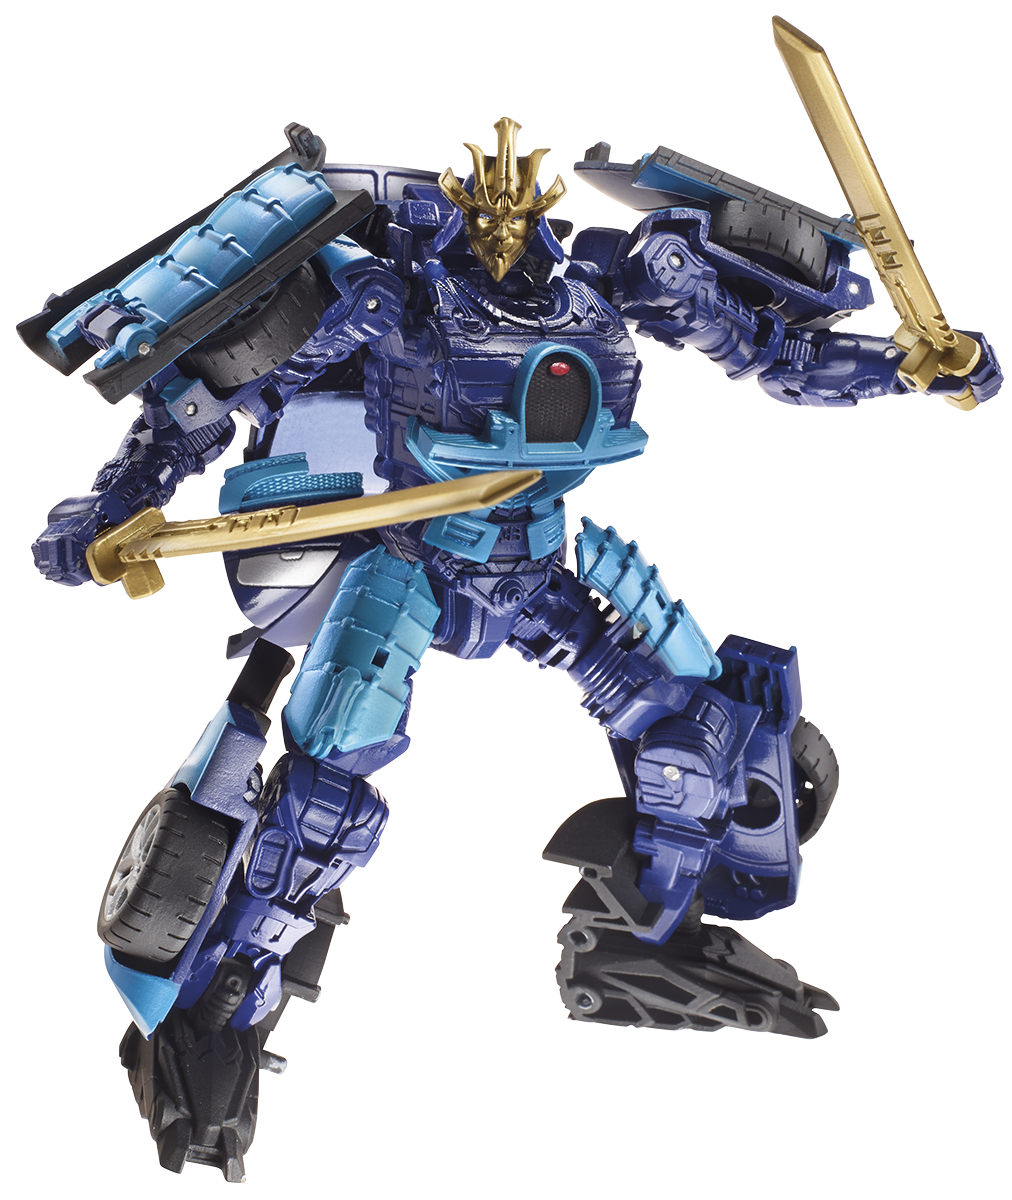 Drift deluxe transformers toys tfw2005 - Autobot drift transformers 5 ...